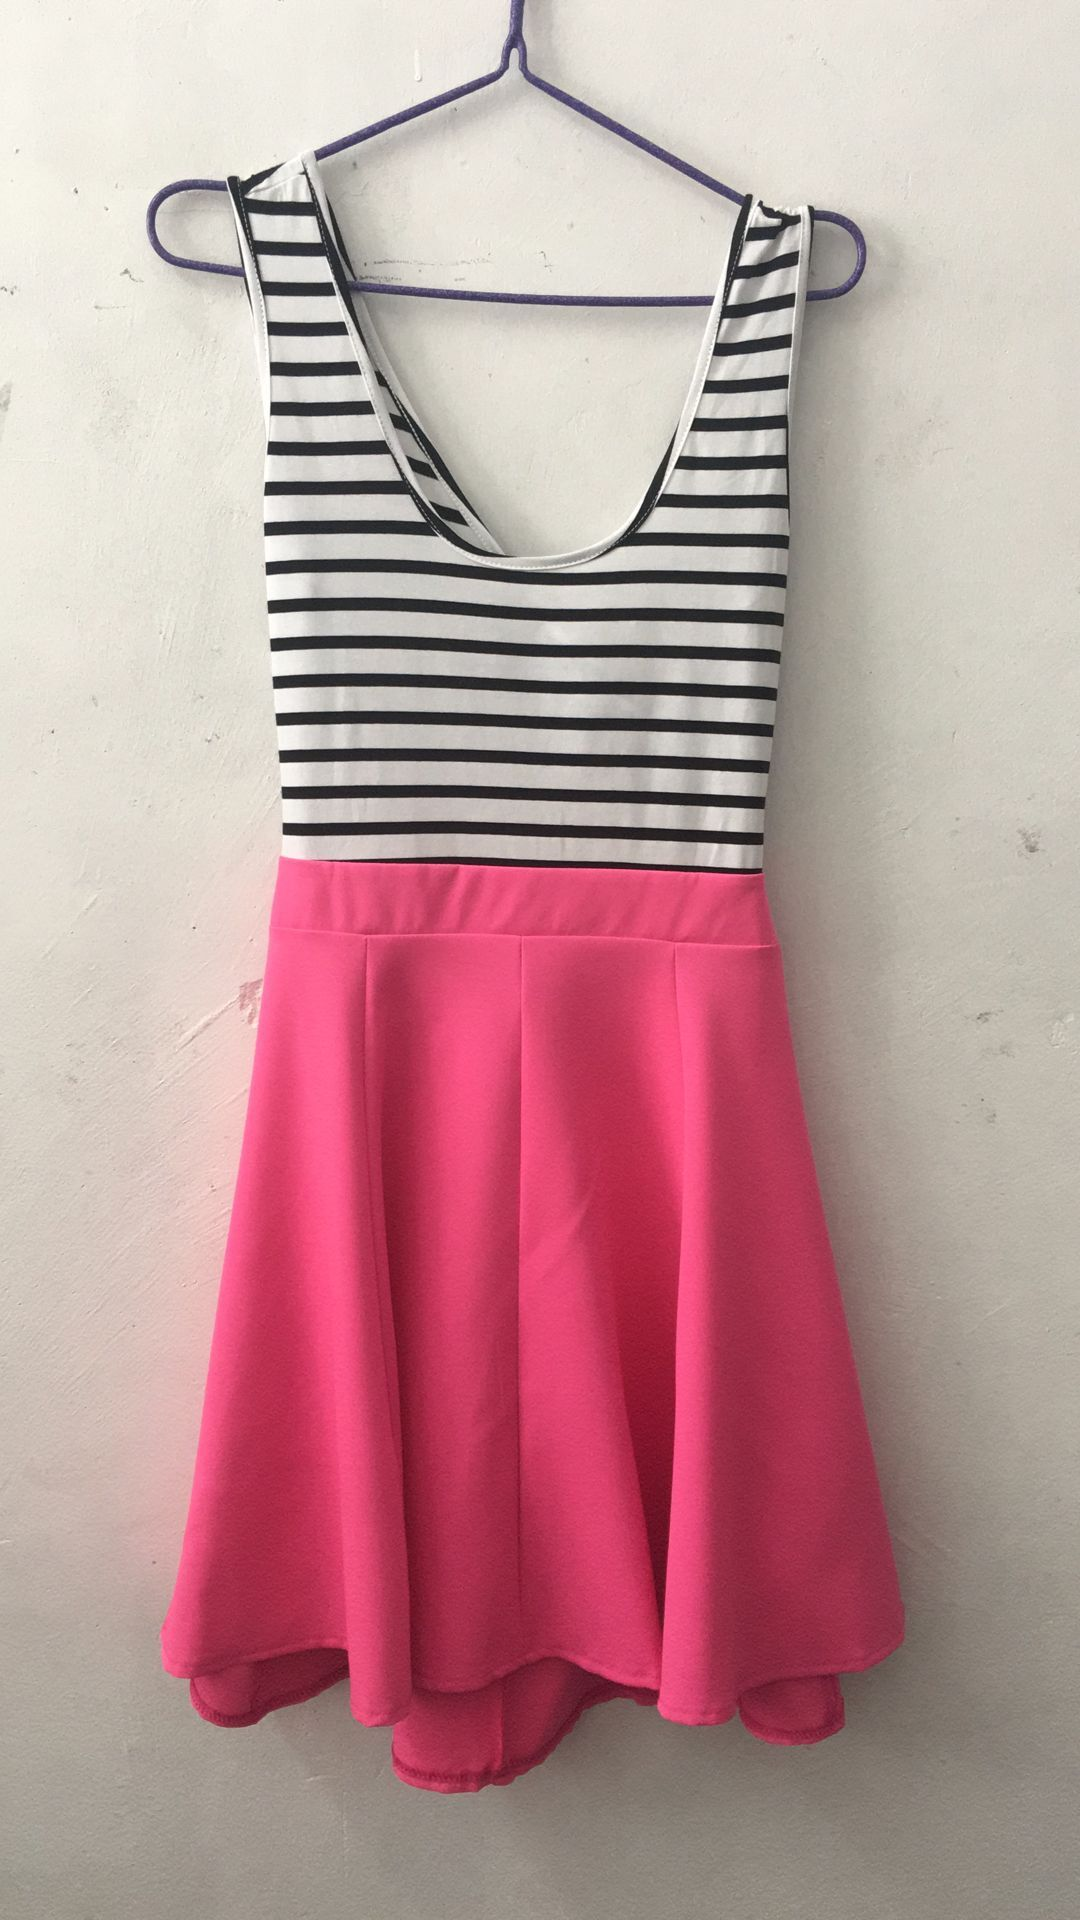 [US Direct] Ladies Open Back Sleeveless Slim Fit Striped Casual Cute Mini Dress Rose Red_S